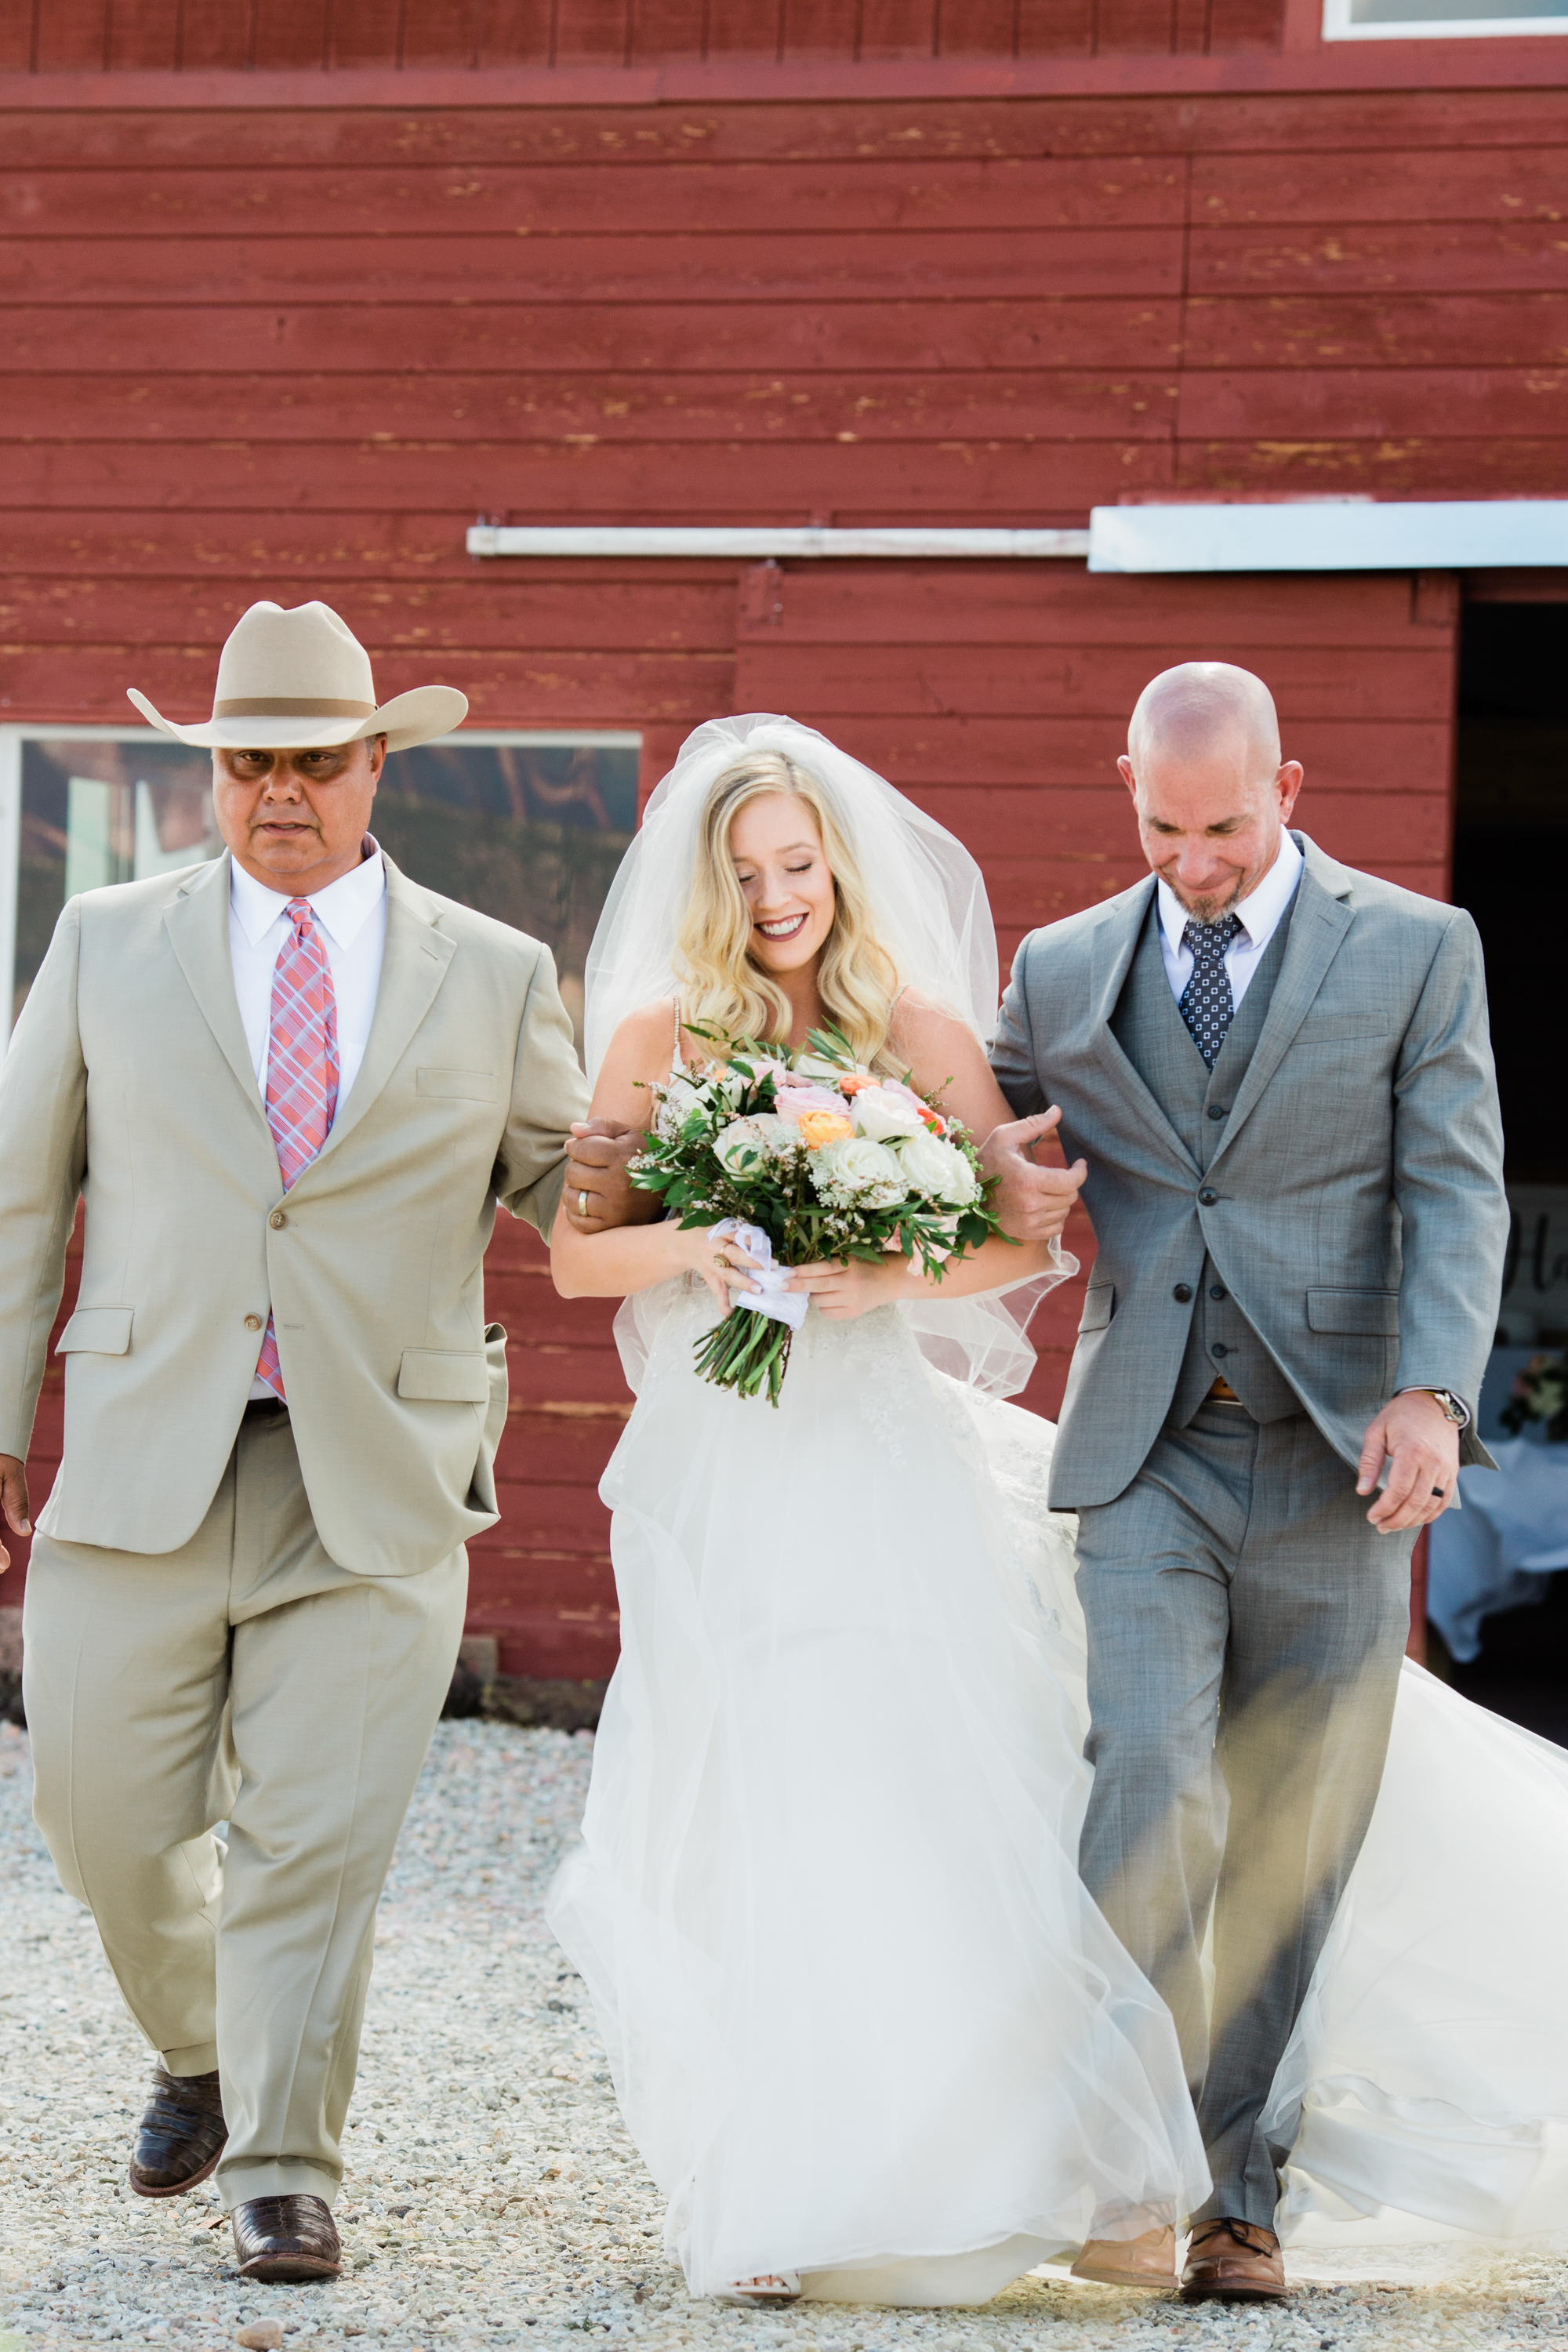 Jordan-Evan-Wedding-203.jpg